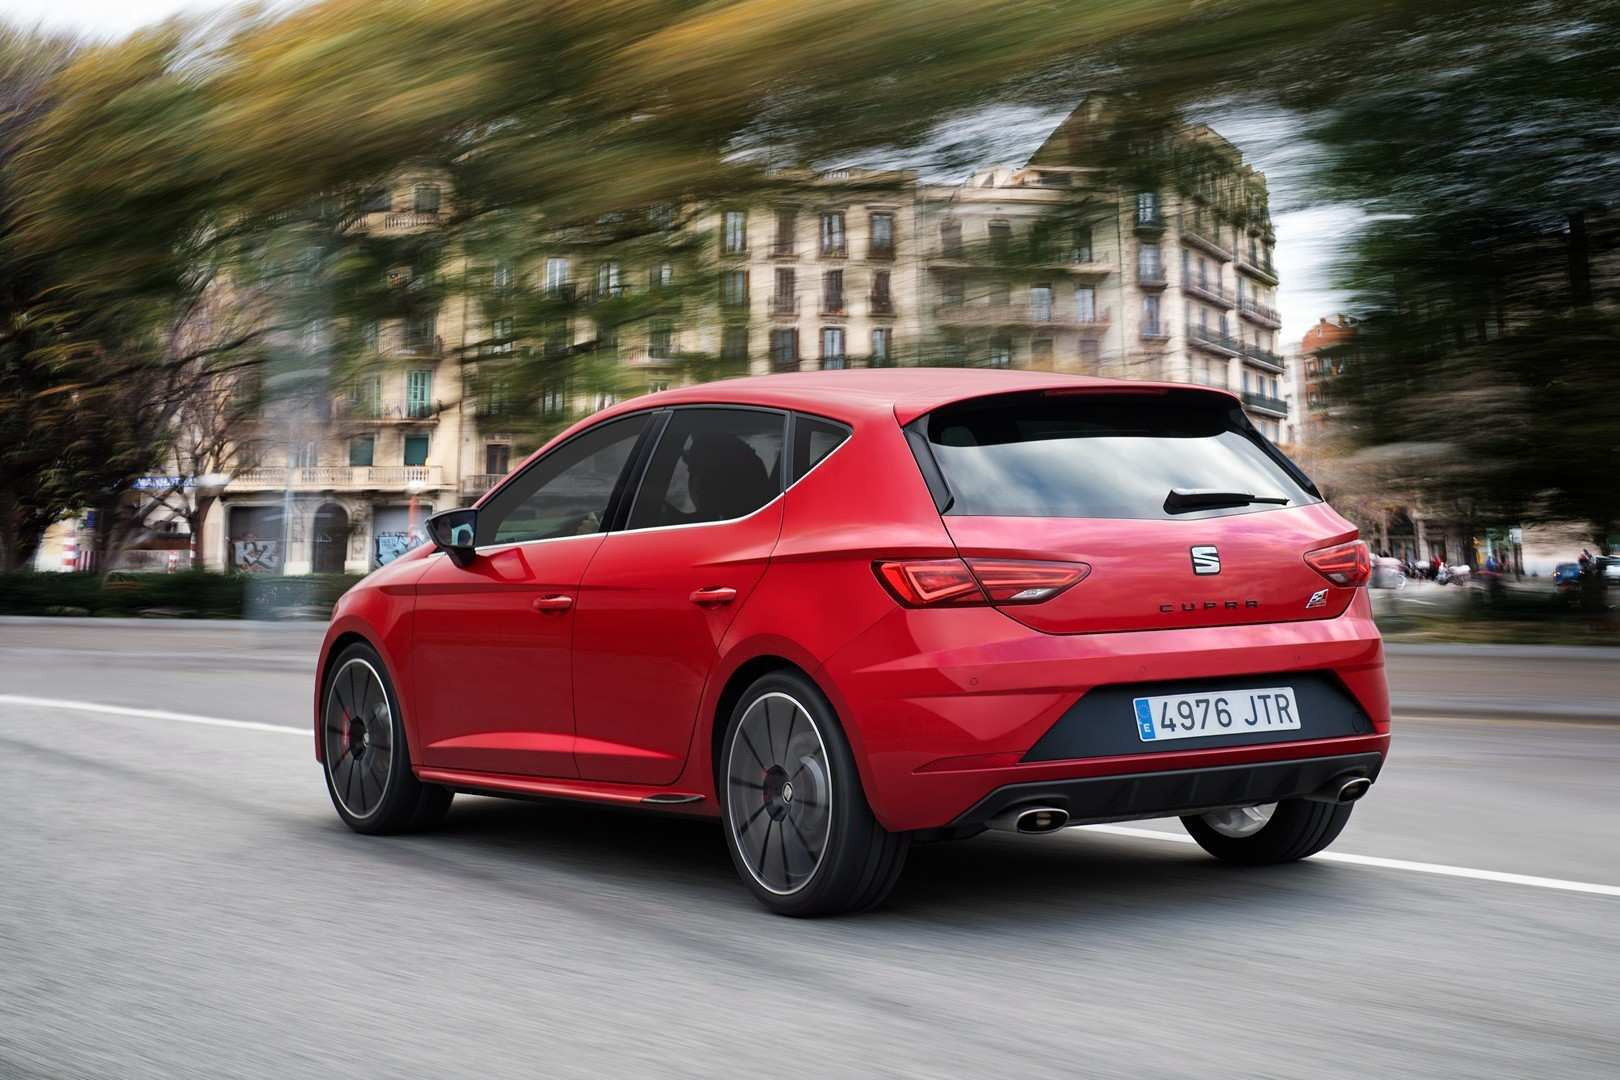 45 New 2020 Seat Ibiza Picture for 2020 Seat Ibiza